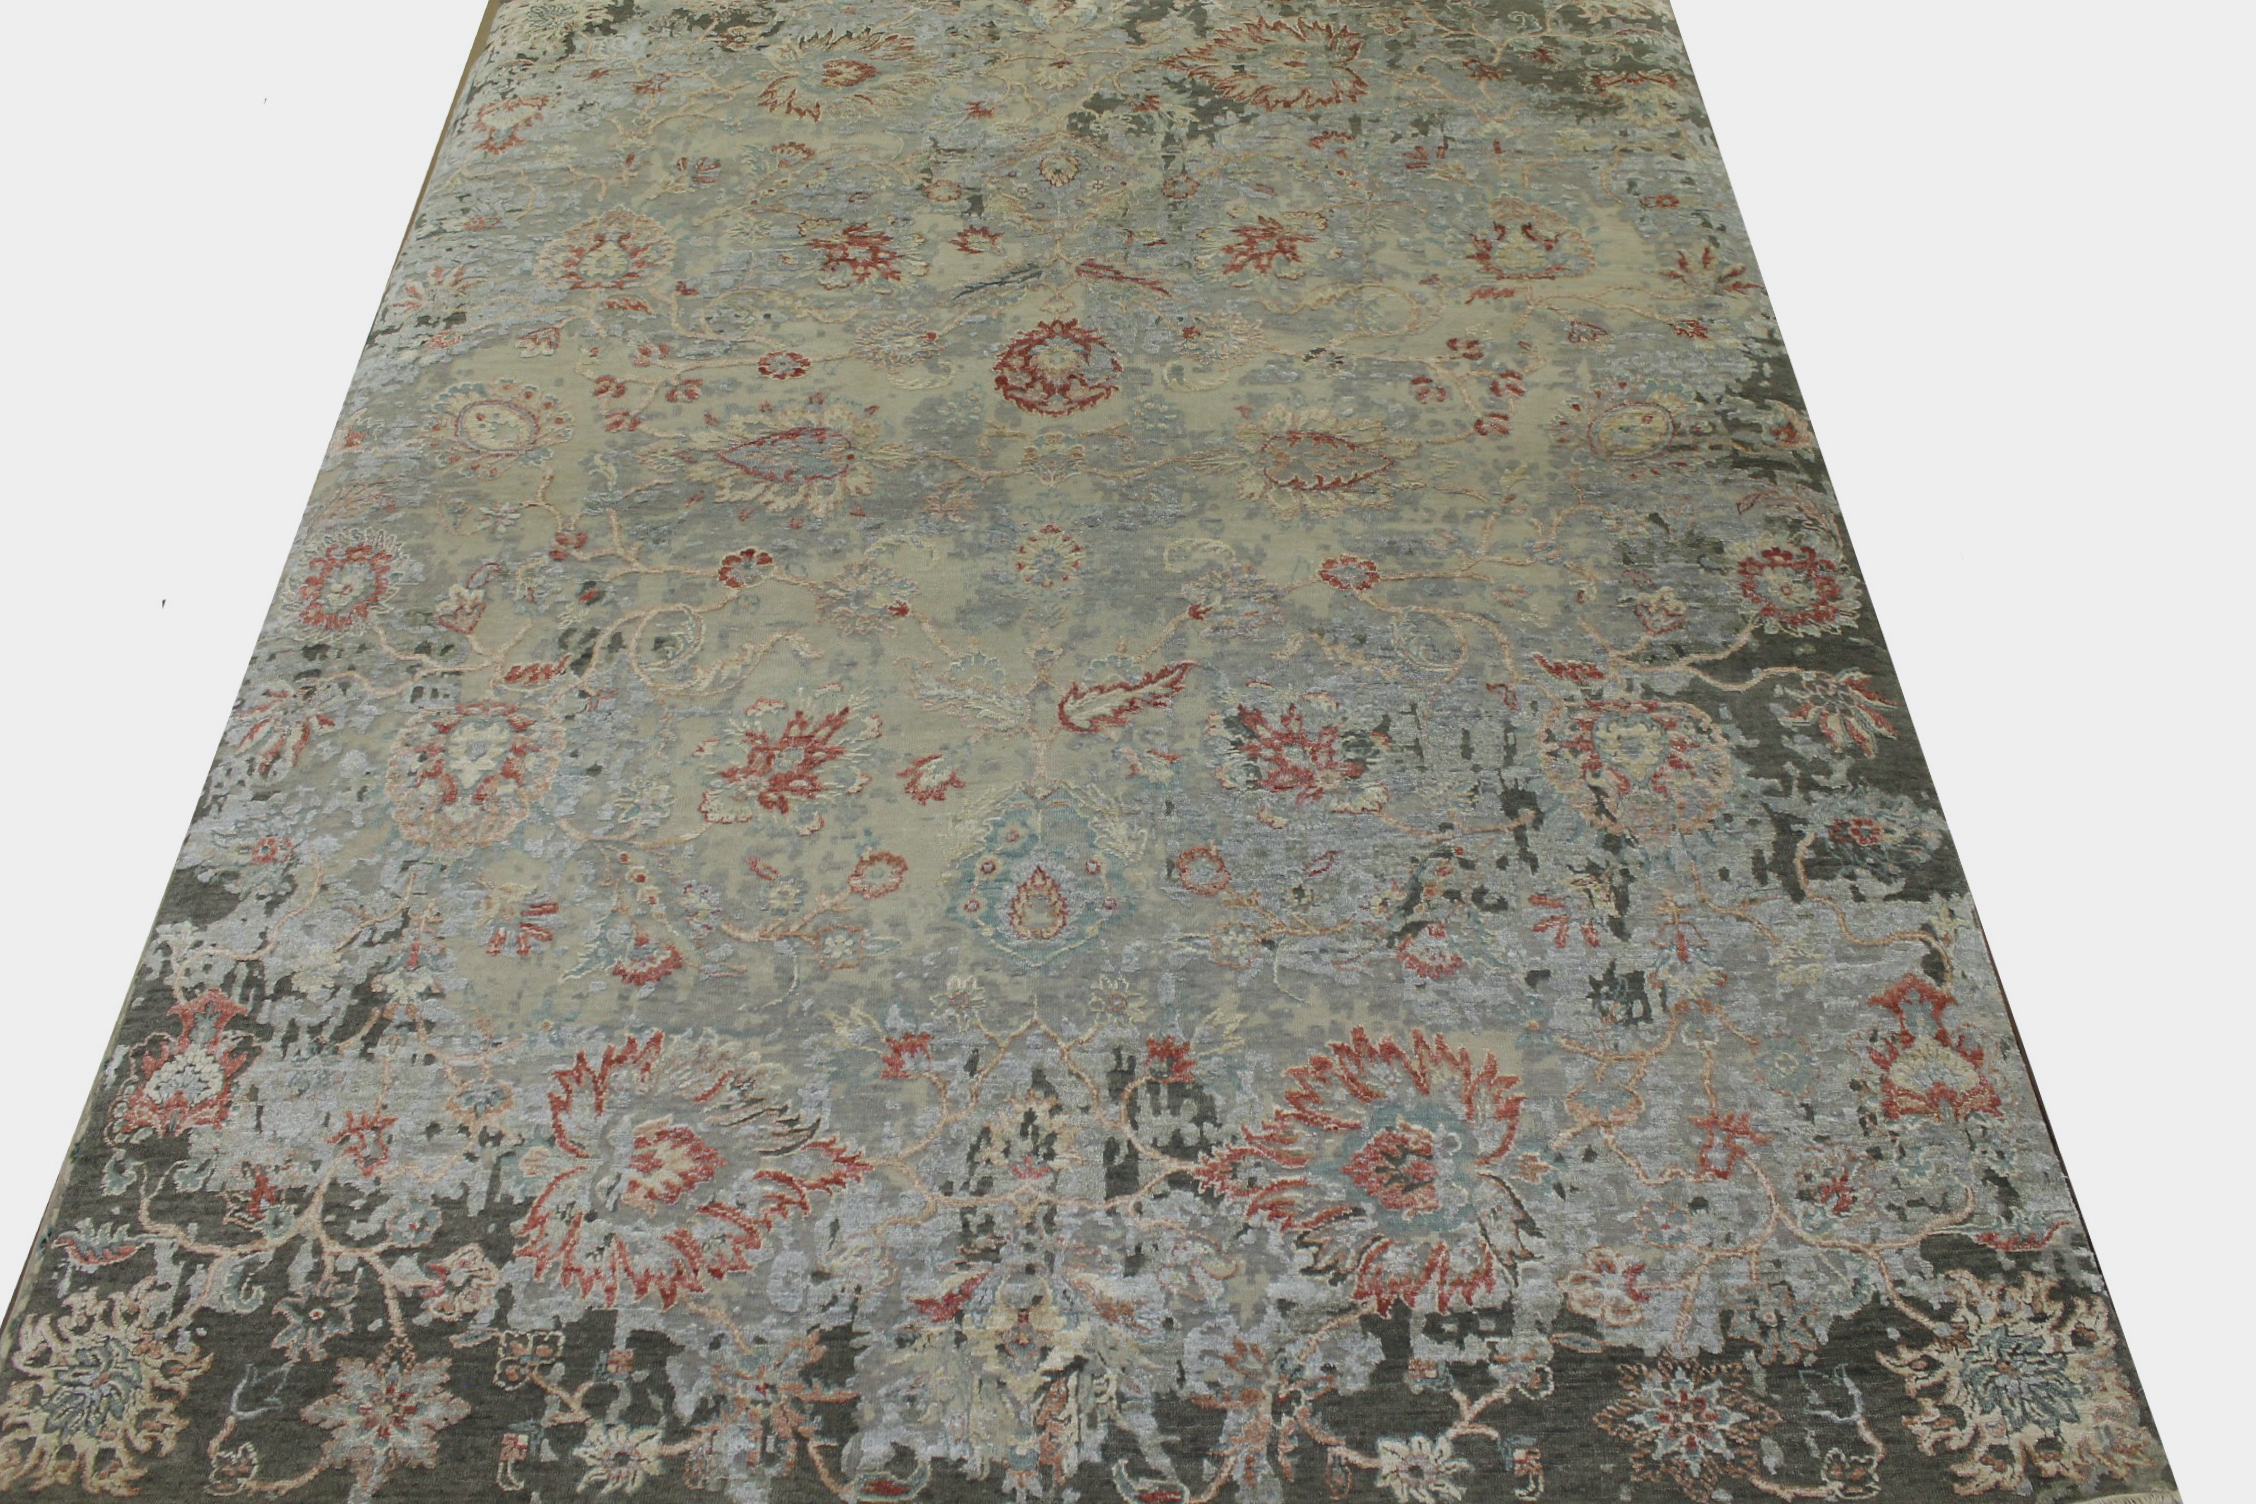 8x10 Transitional Hand Knotted Wool & Viscose Area Rug - MR023571